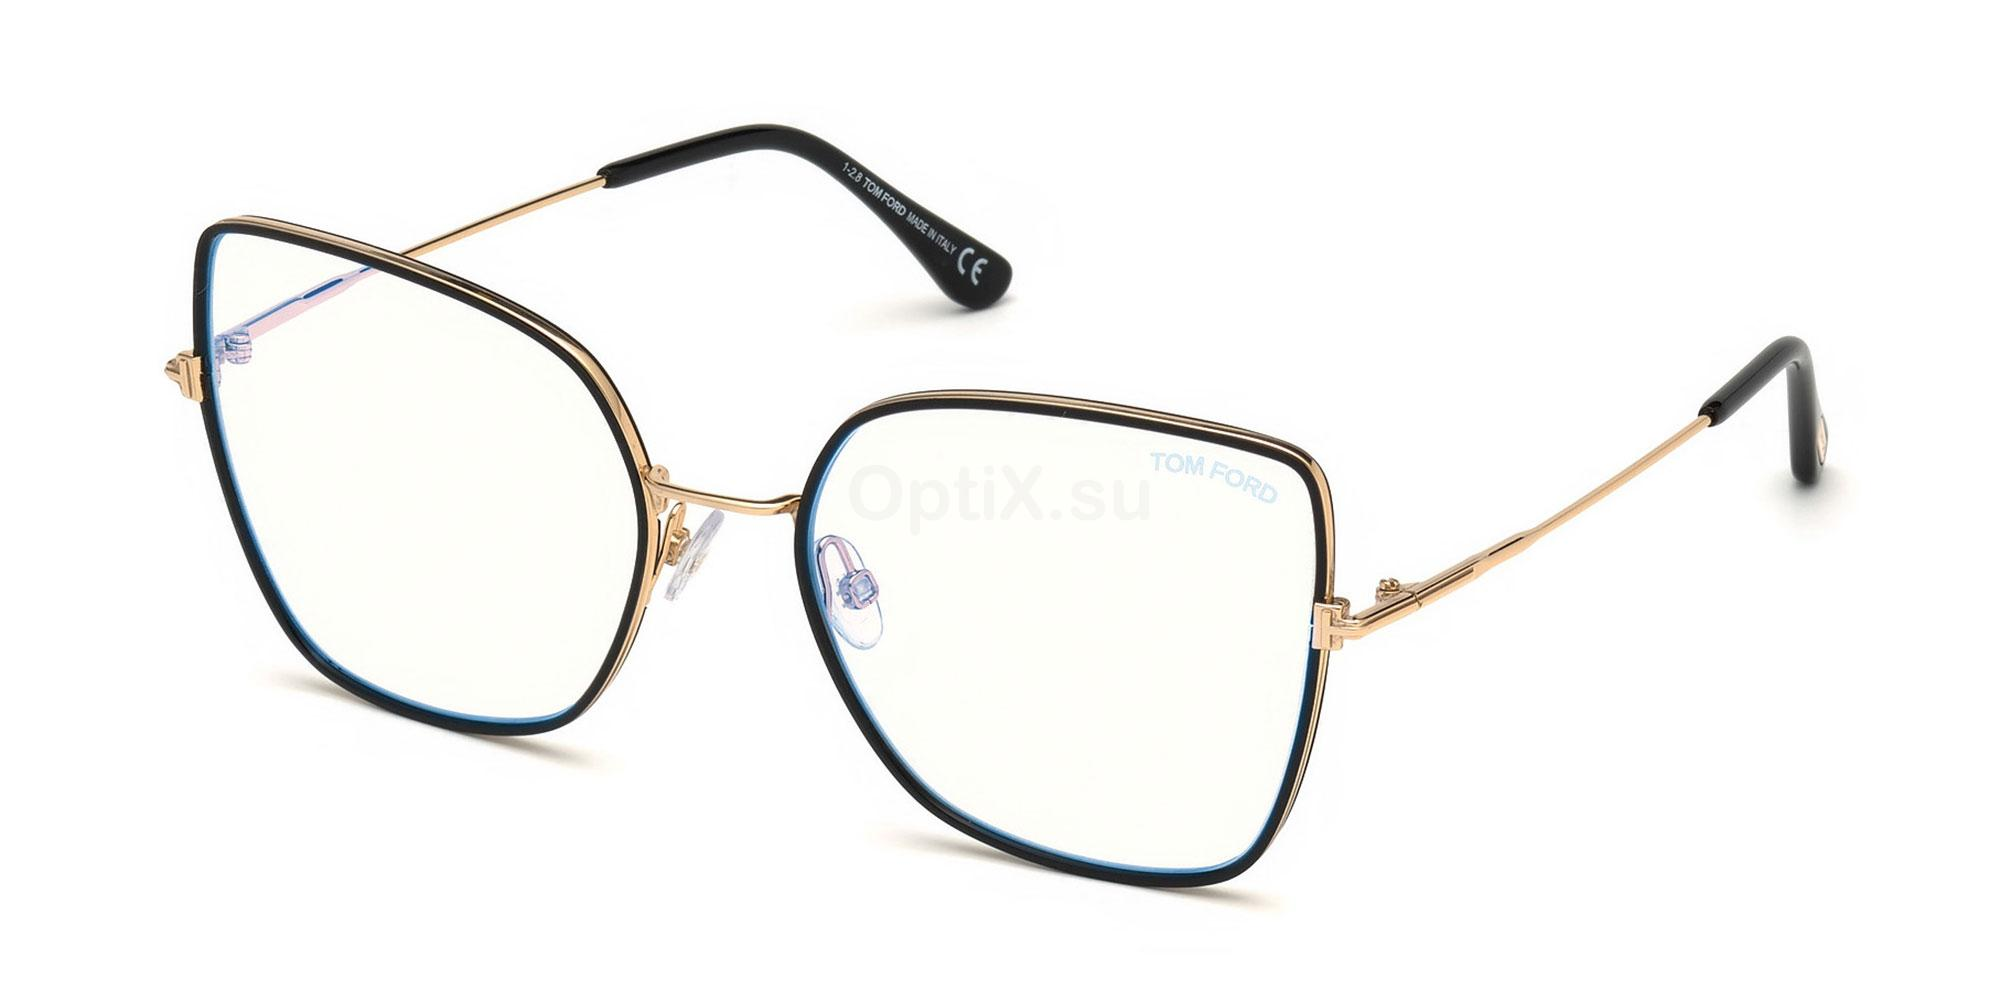 001 FT5630-B Glasses, Tom Ford